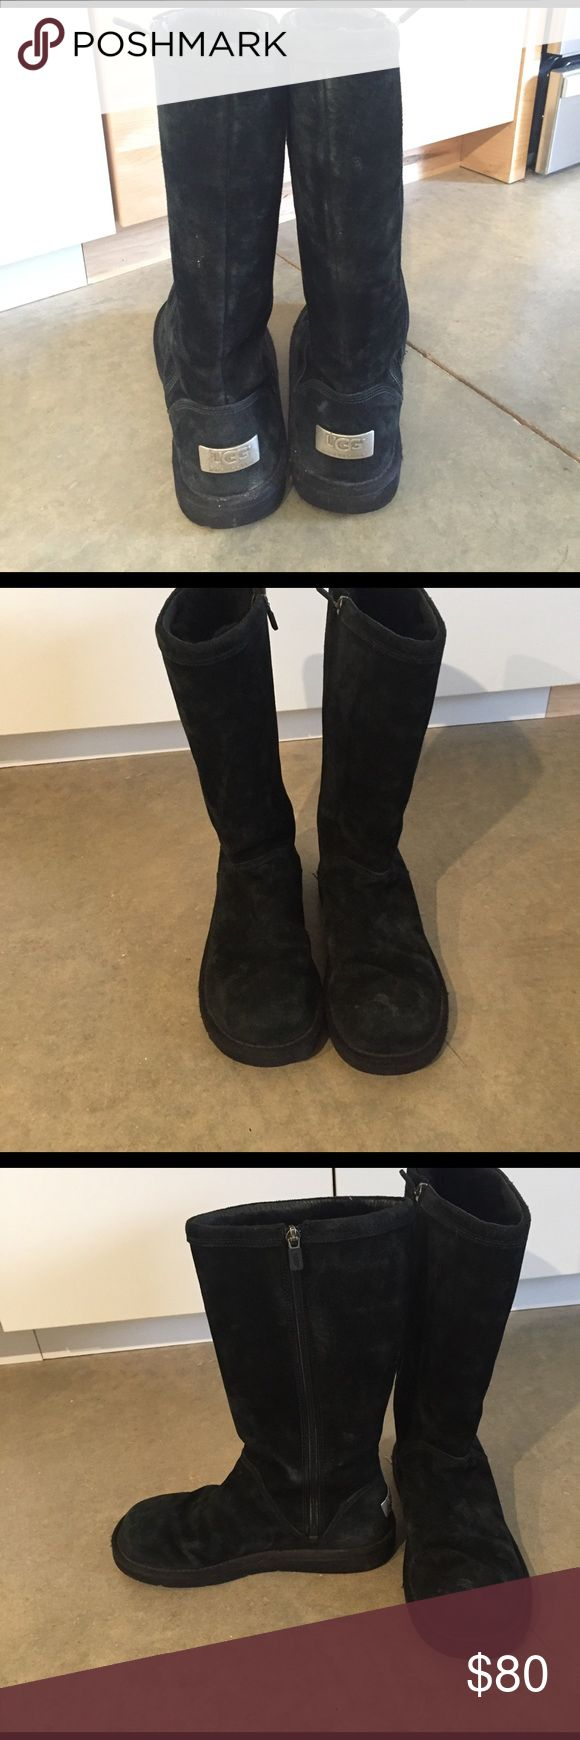 Tall UGG boots Size 8 Black UGG boots. Great condition just need to be cleaned on the outside! UGG Shoes Winter & Rain Boots